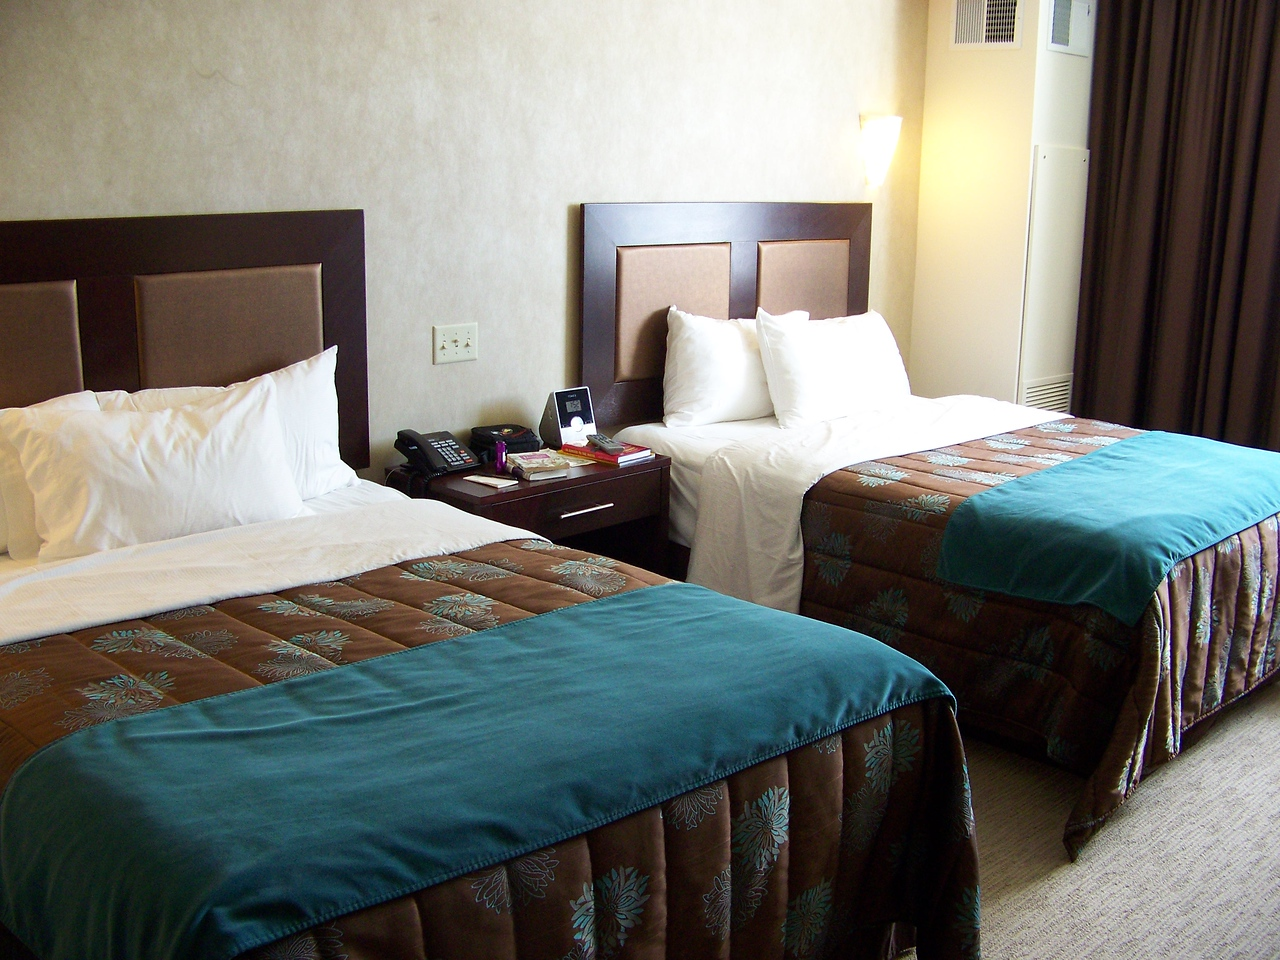 Our hotel room was great!  Very comfortable.<br /> [Seven Feathers Resort in Canyonville, OR]